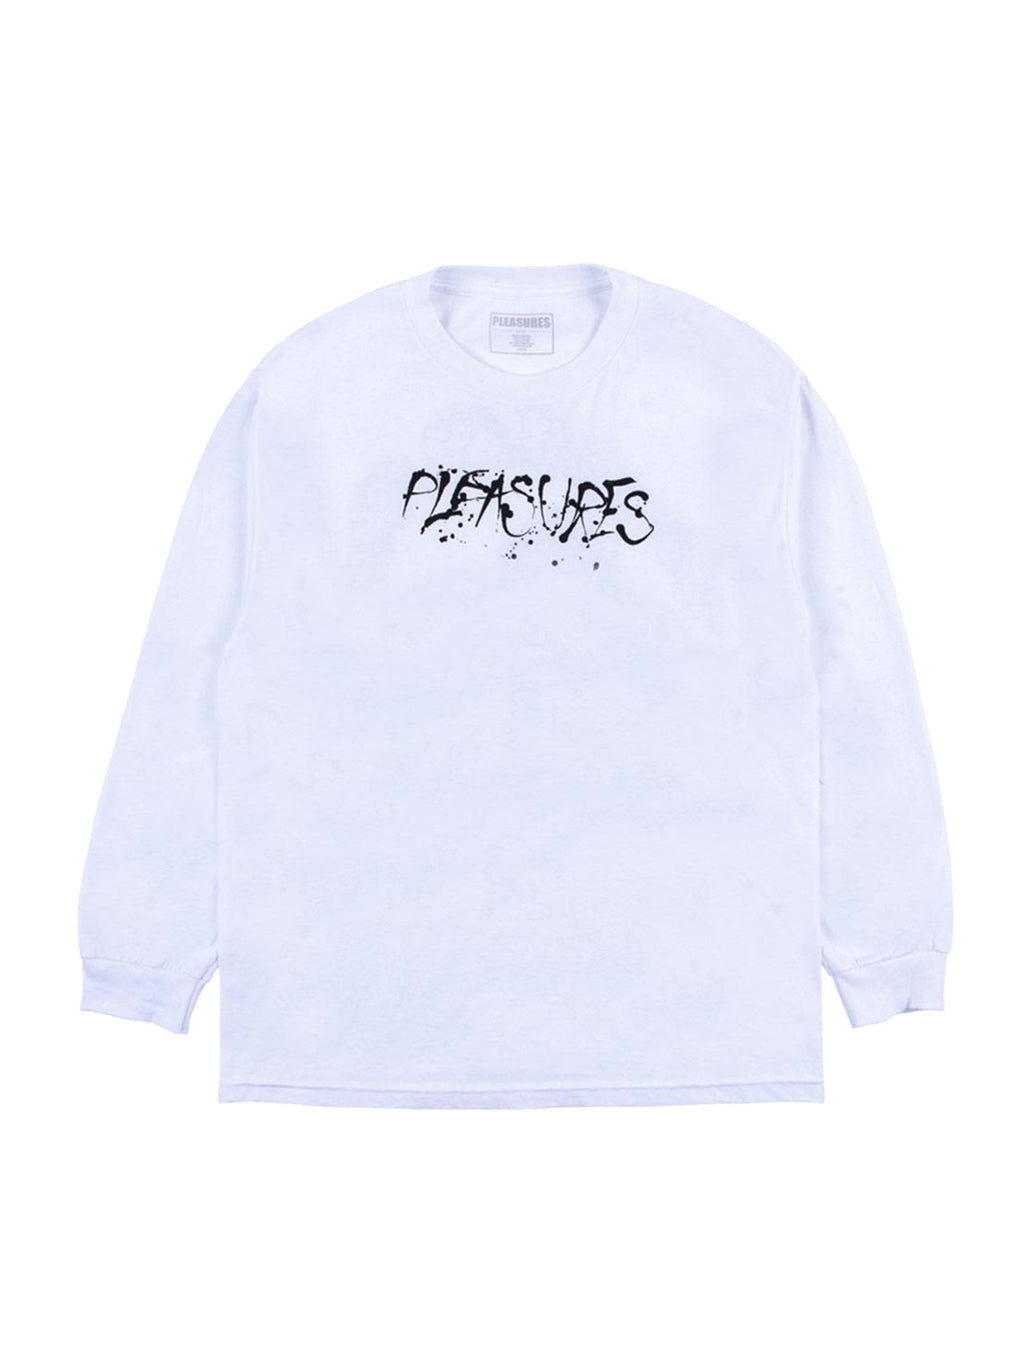 White God Bless Long Sleeve T Shirt